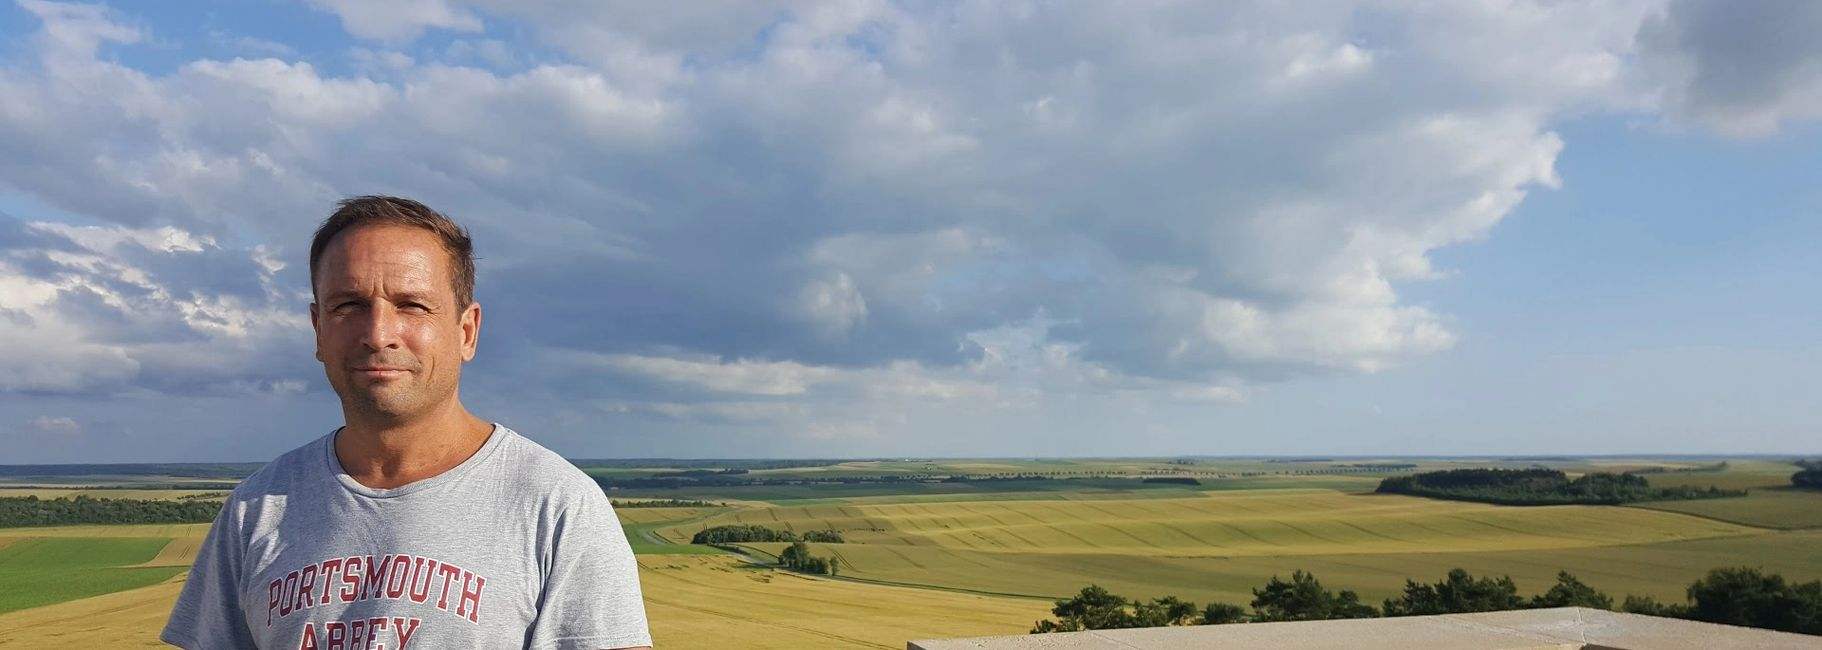 Geoffrey Wawro visits the Blanc Mont near Reims in Champagne to view the 1918 battlefield.